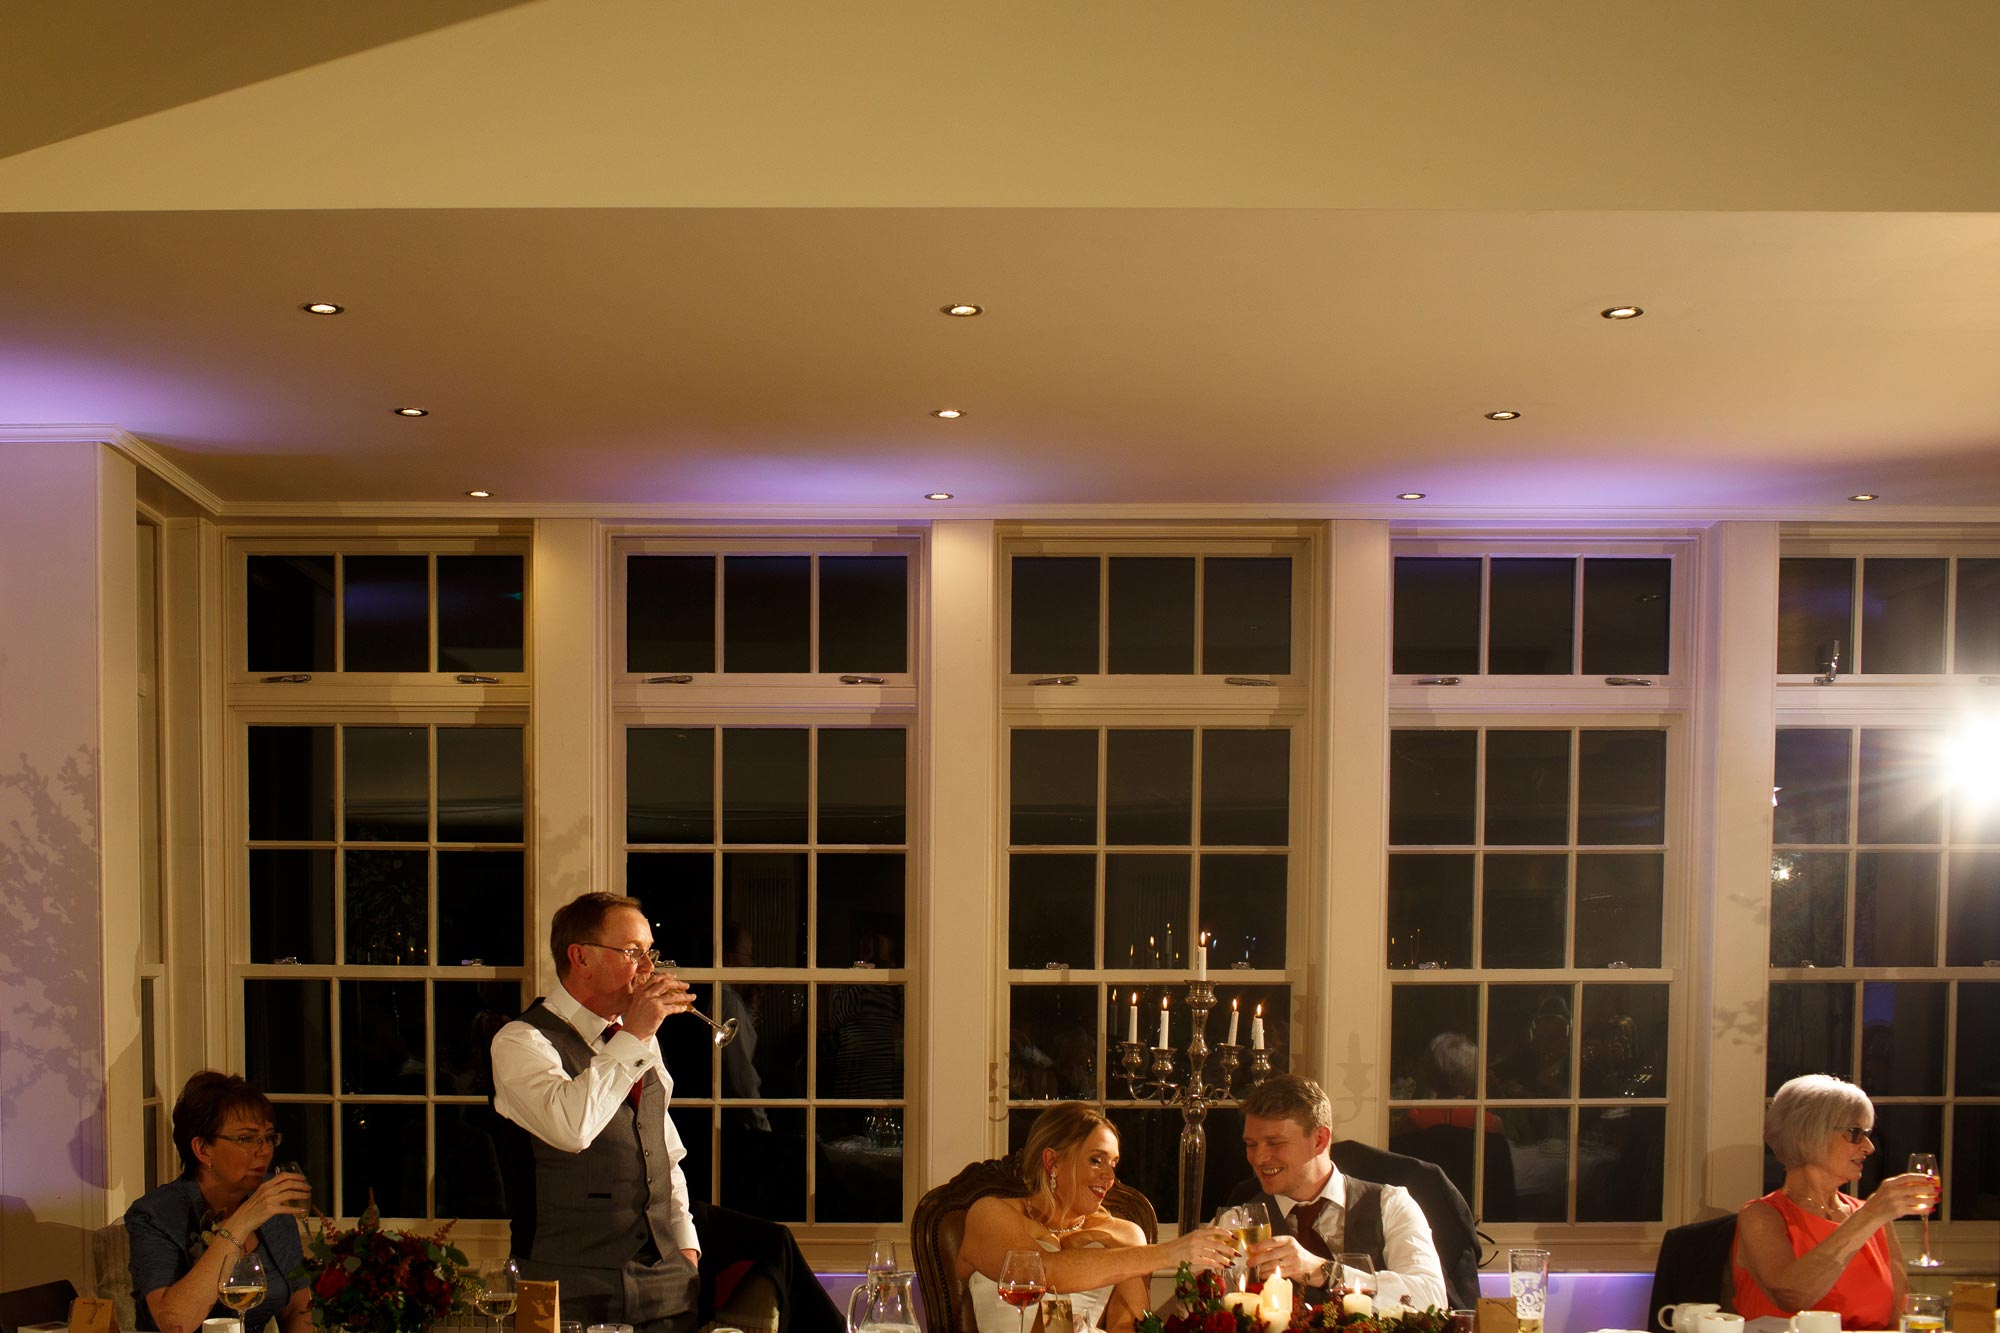 Bride and groom clinking glasses during the wedding speeches at Mitton Hall